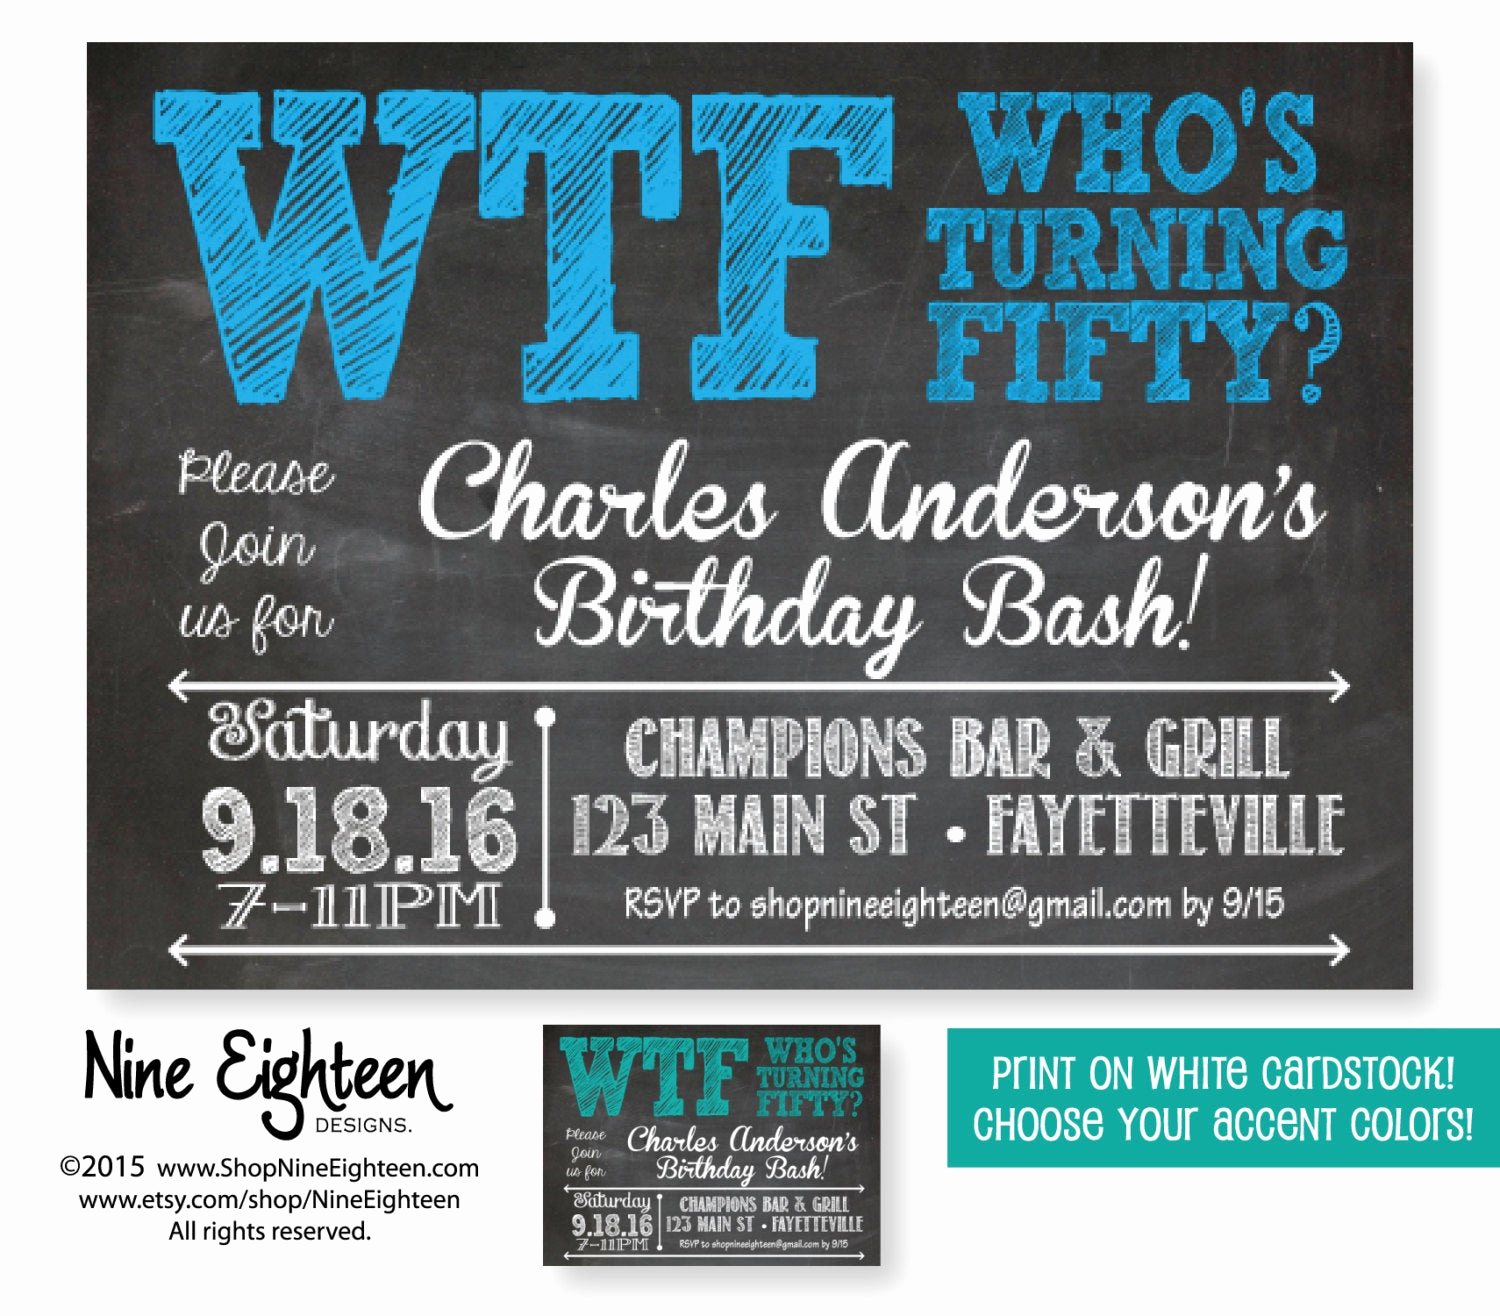 50th Birthday Invitation Ideas Unique 50th Birthday Party Invitation Wtf who S Turning by